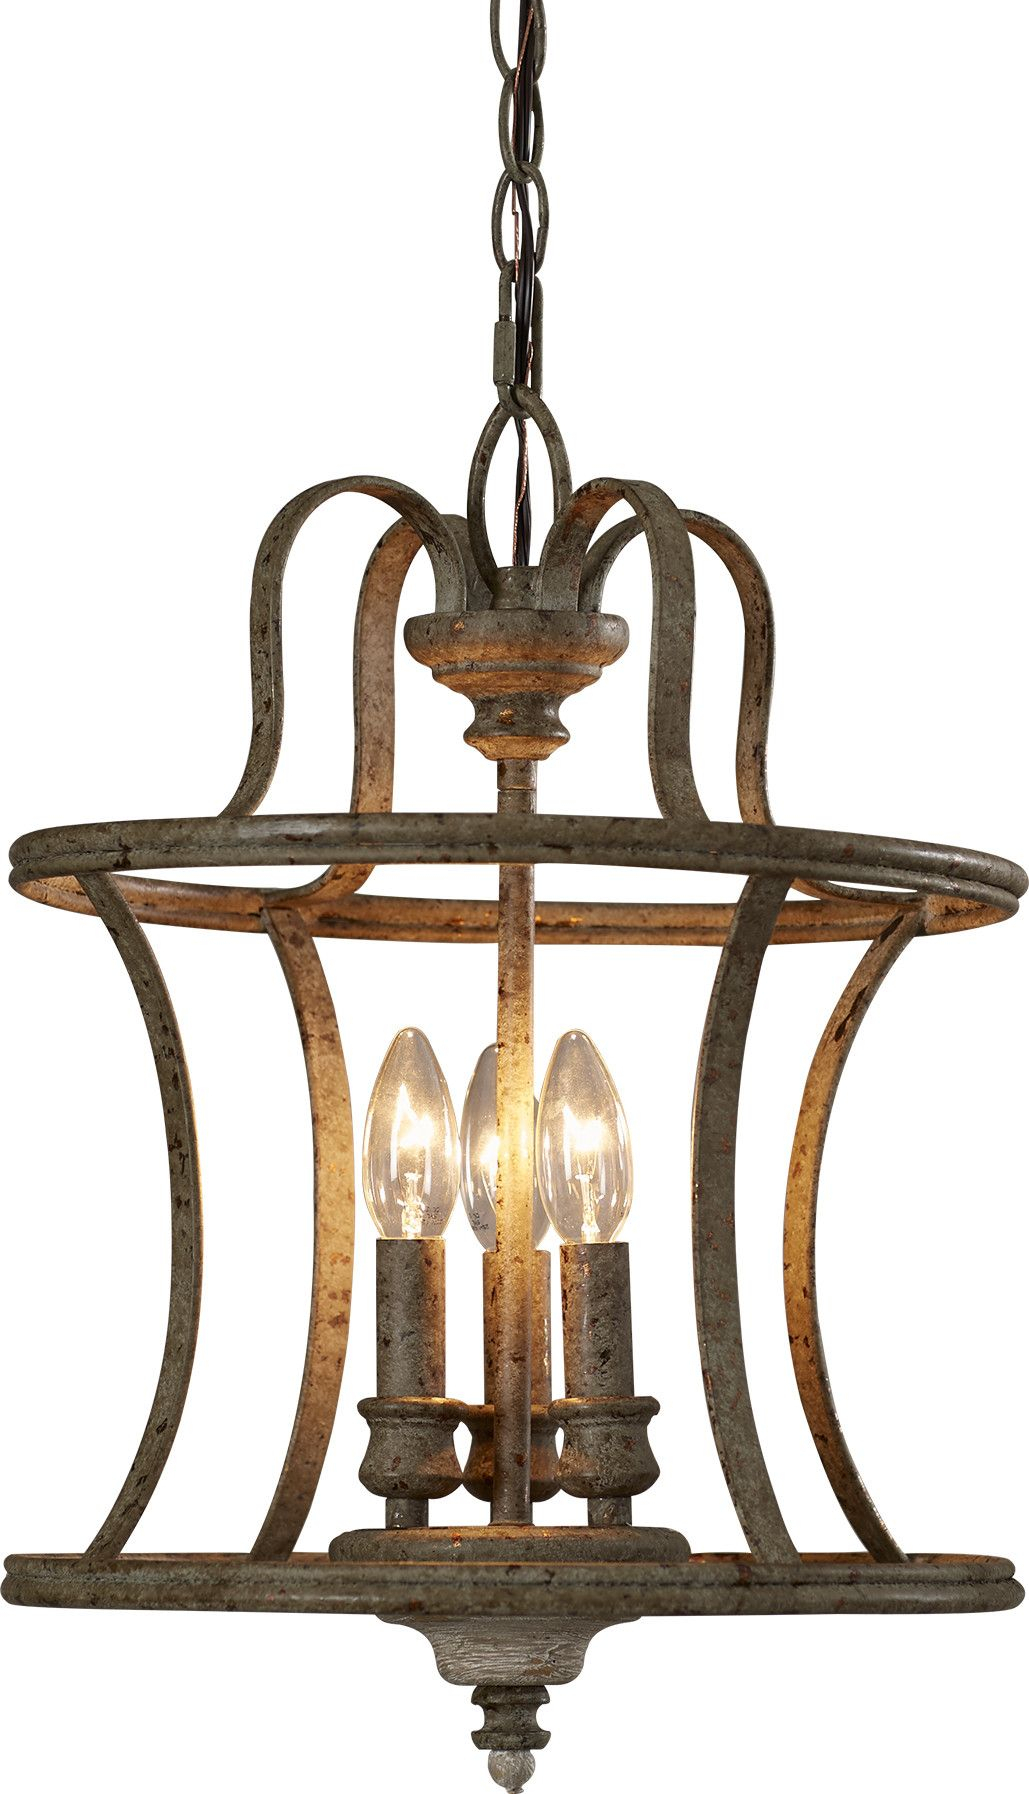 Armande 3 Light Lantern Pendant In 2019 | Foyer Lighting Intended For Armande Candle Style Chandeliers (Image 3 of 30)